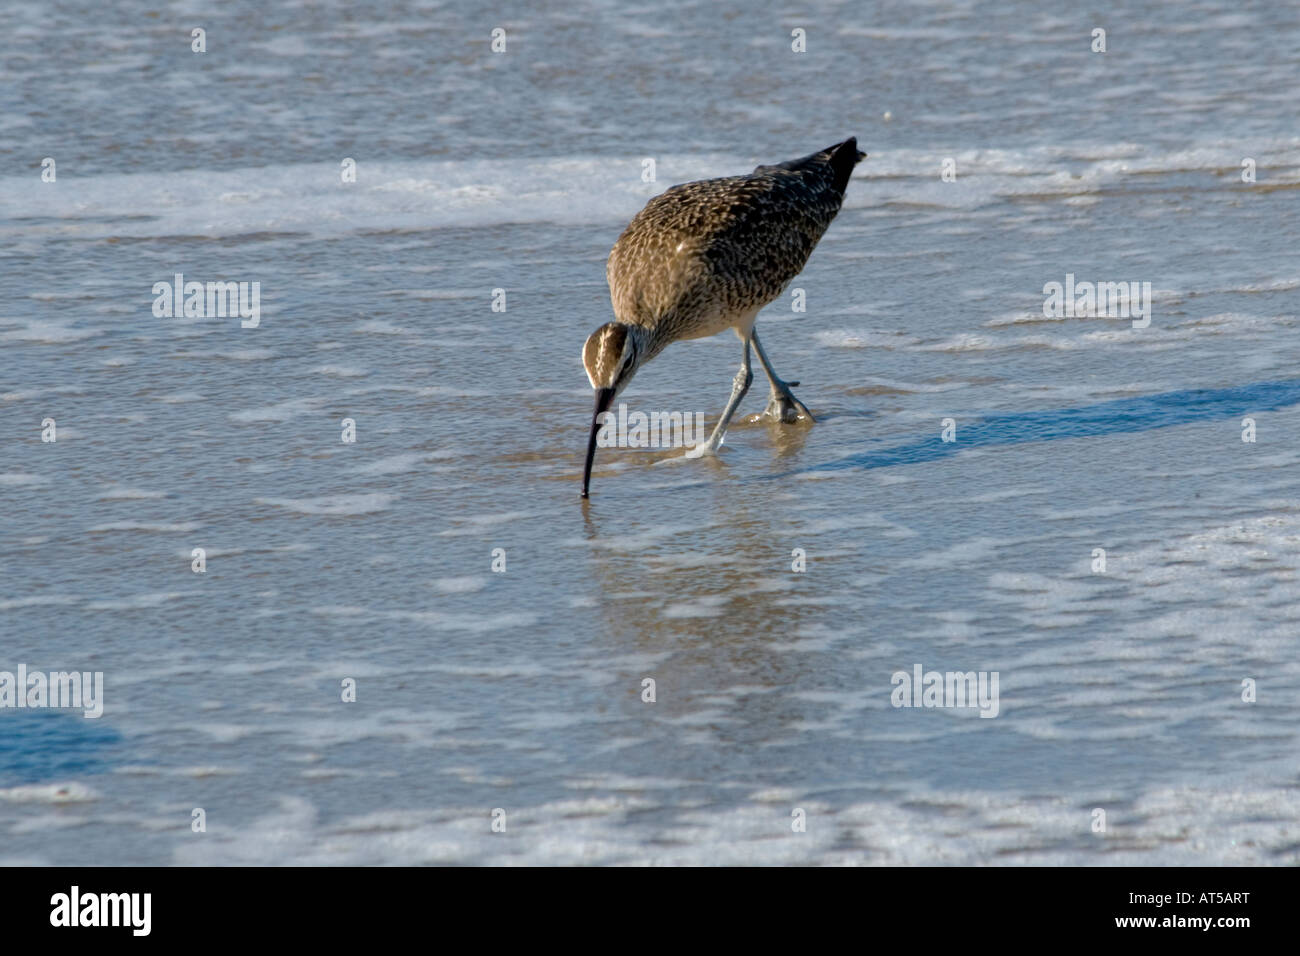 a-whimbrel-numenius-phaeopus-searches-fo